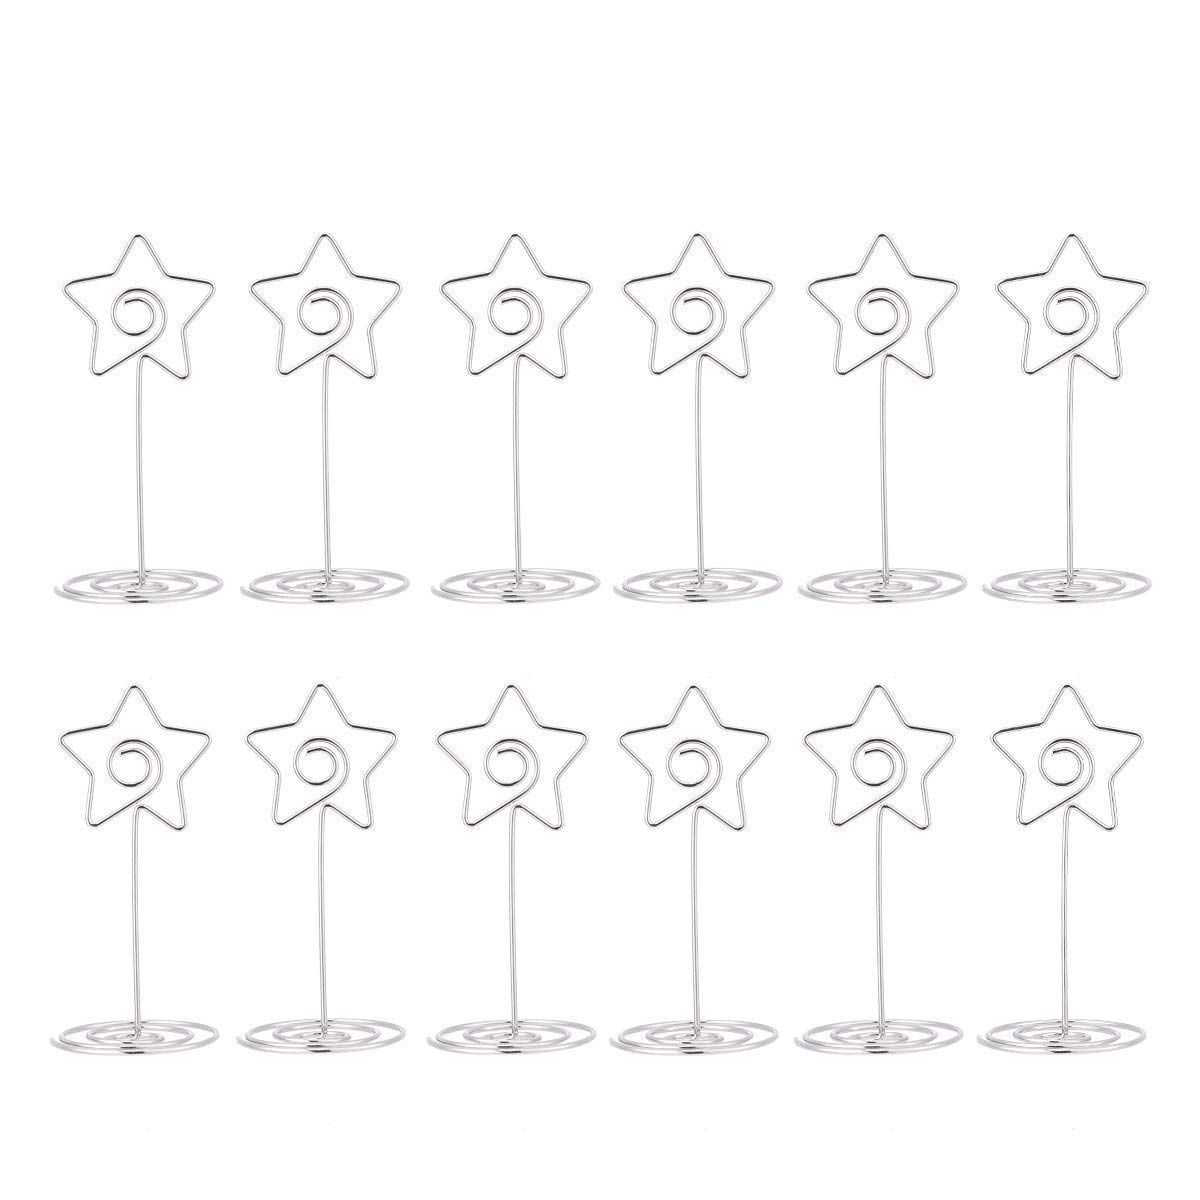 AIEVE Table Card Holders,12 Pack Star Shape Table Number Holder Table Photo Holder Table Picture Stand Menu Clips Holders for Place Cards for Weddings Party Office Desk,Silver